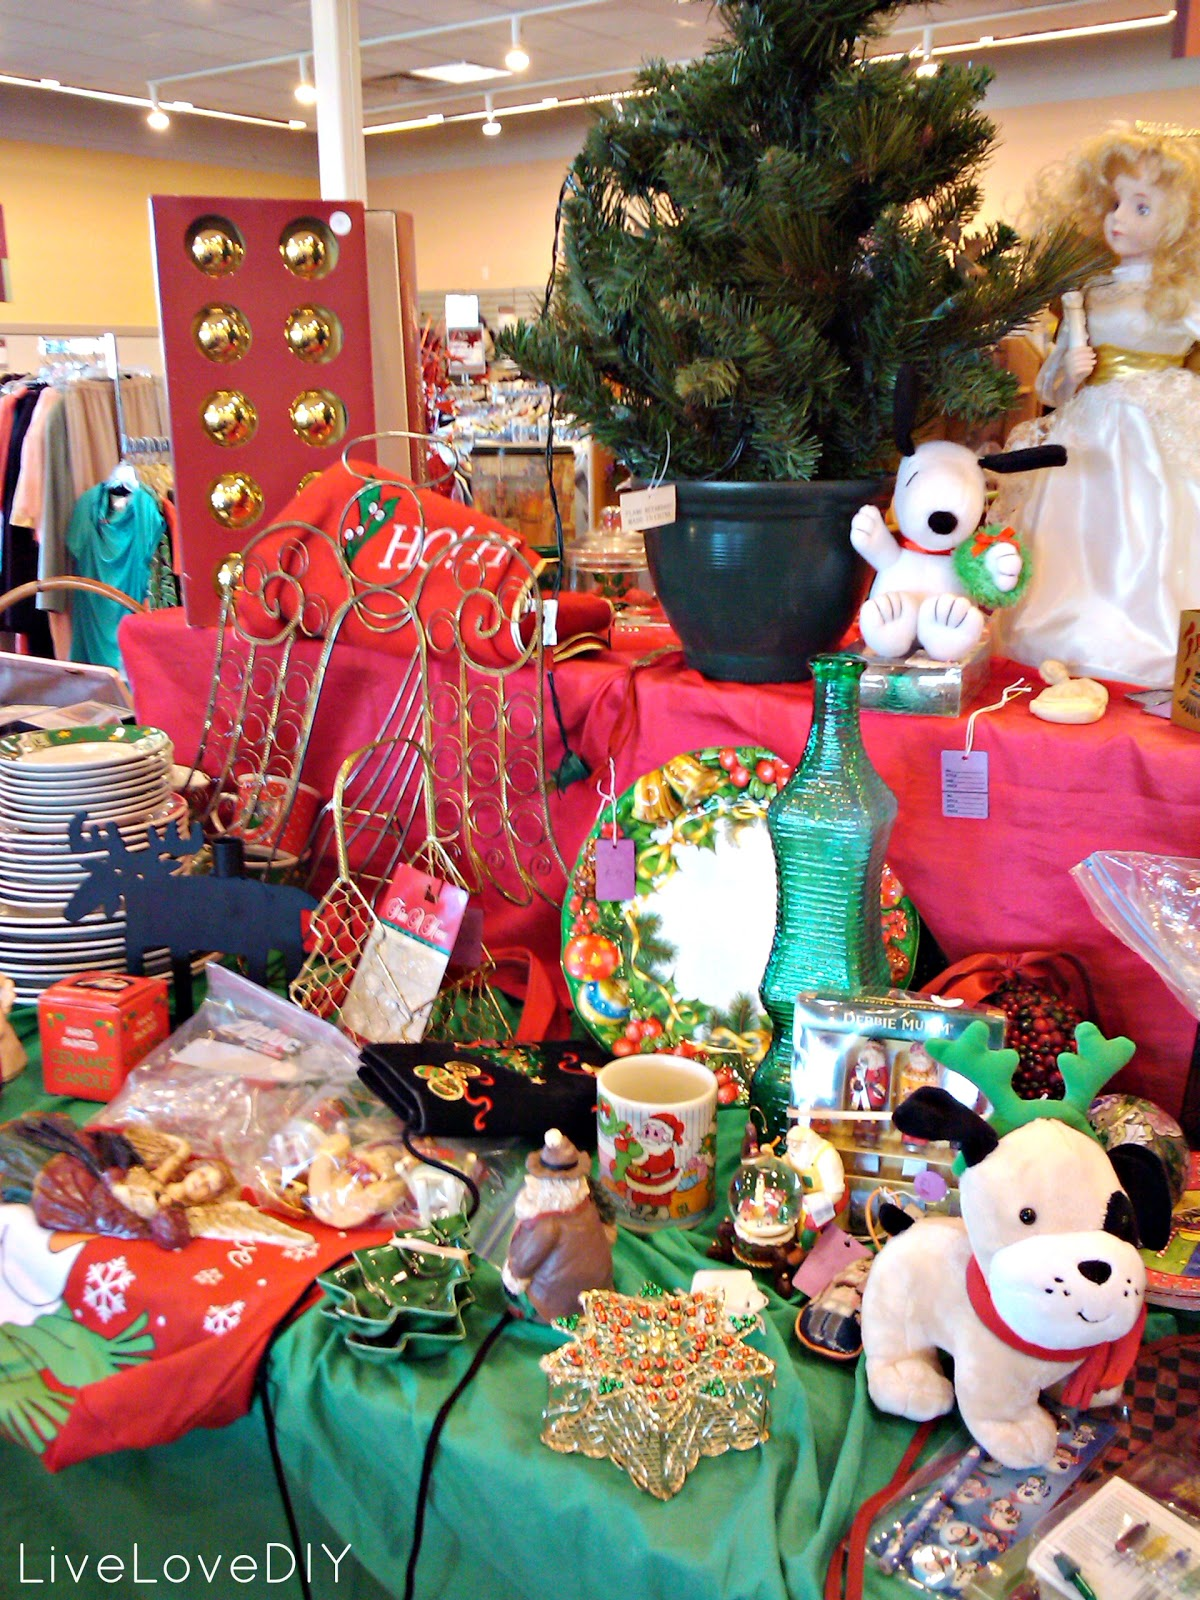 livelovediy how to shop at a thrift store for christmas decor - Christmas Decoration Store